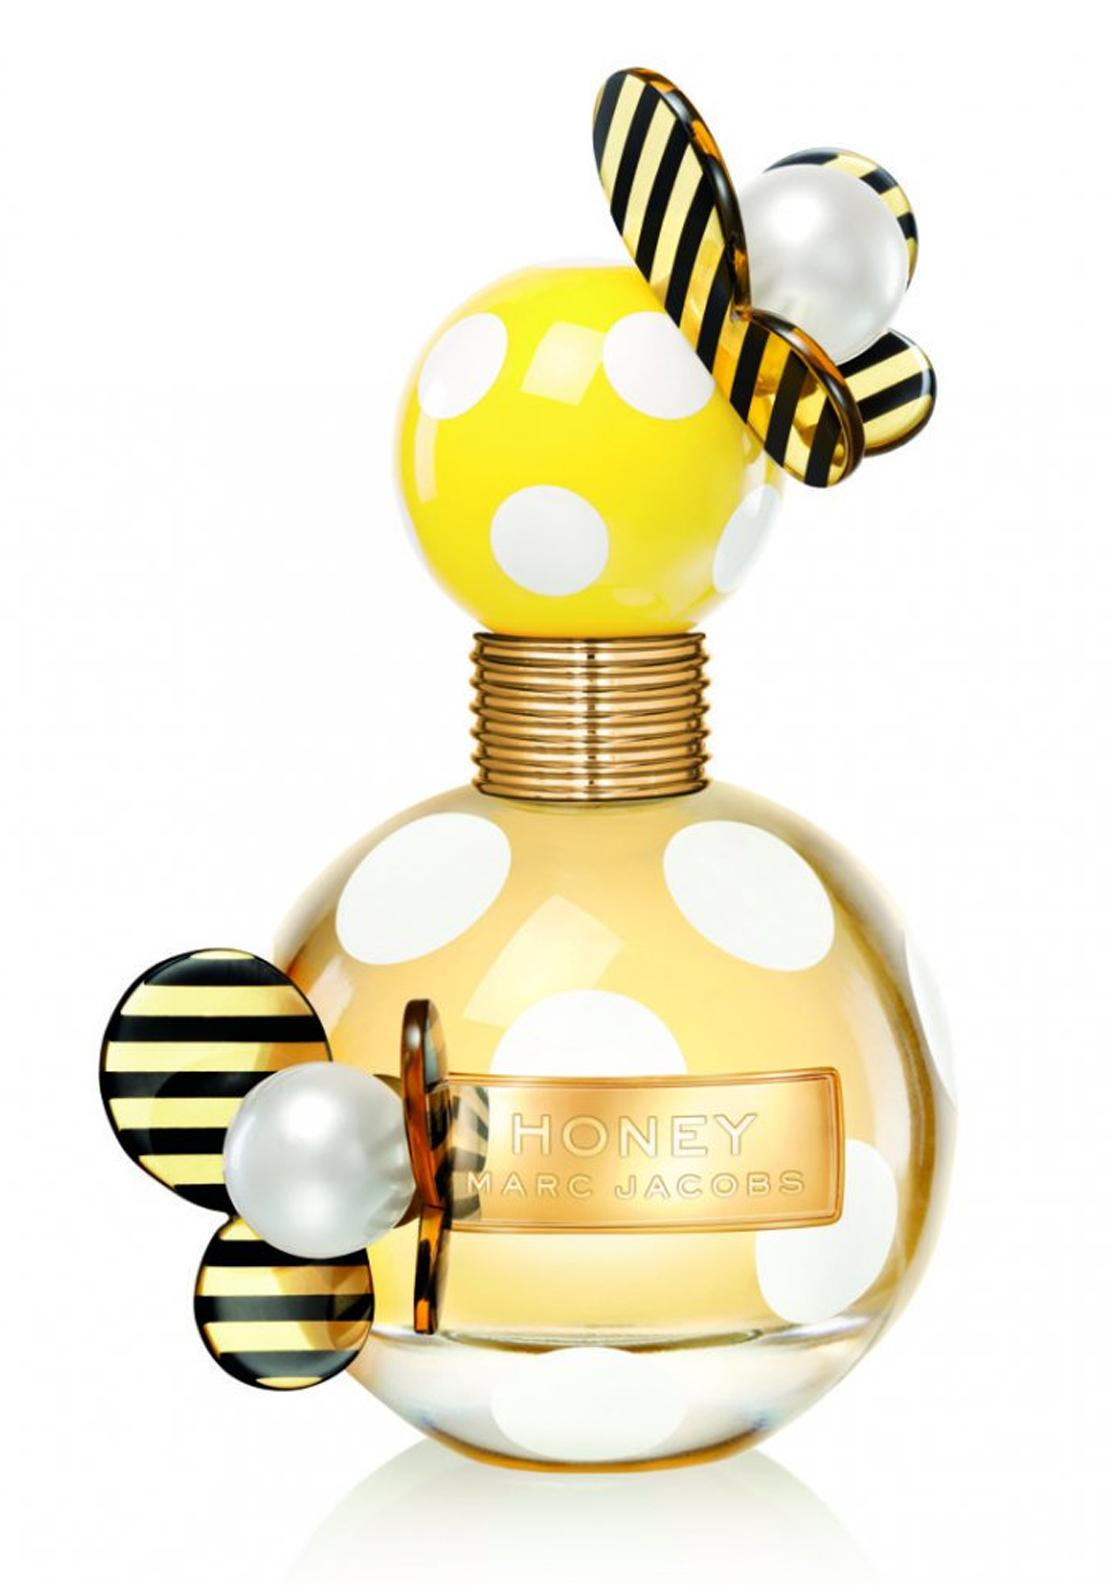 Marc Jacobs Honey Eau De Parfum, 100ml